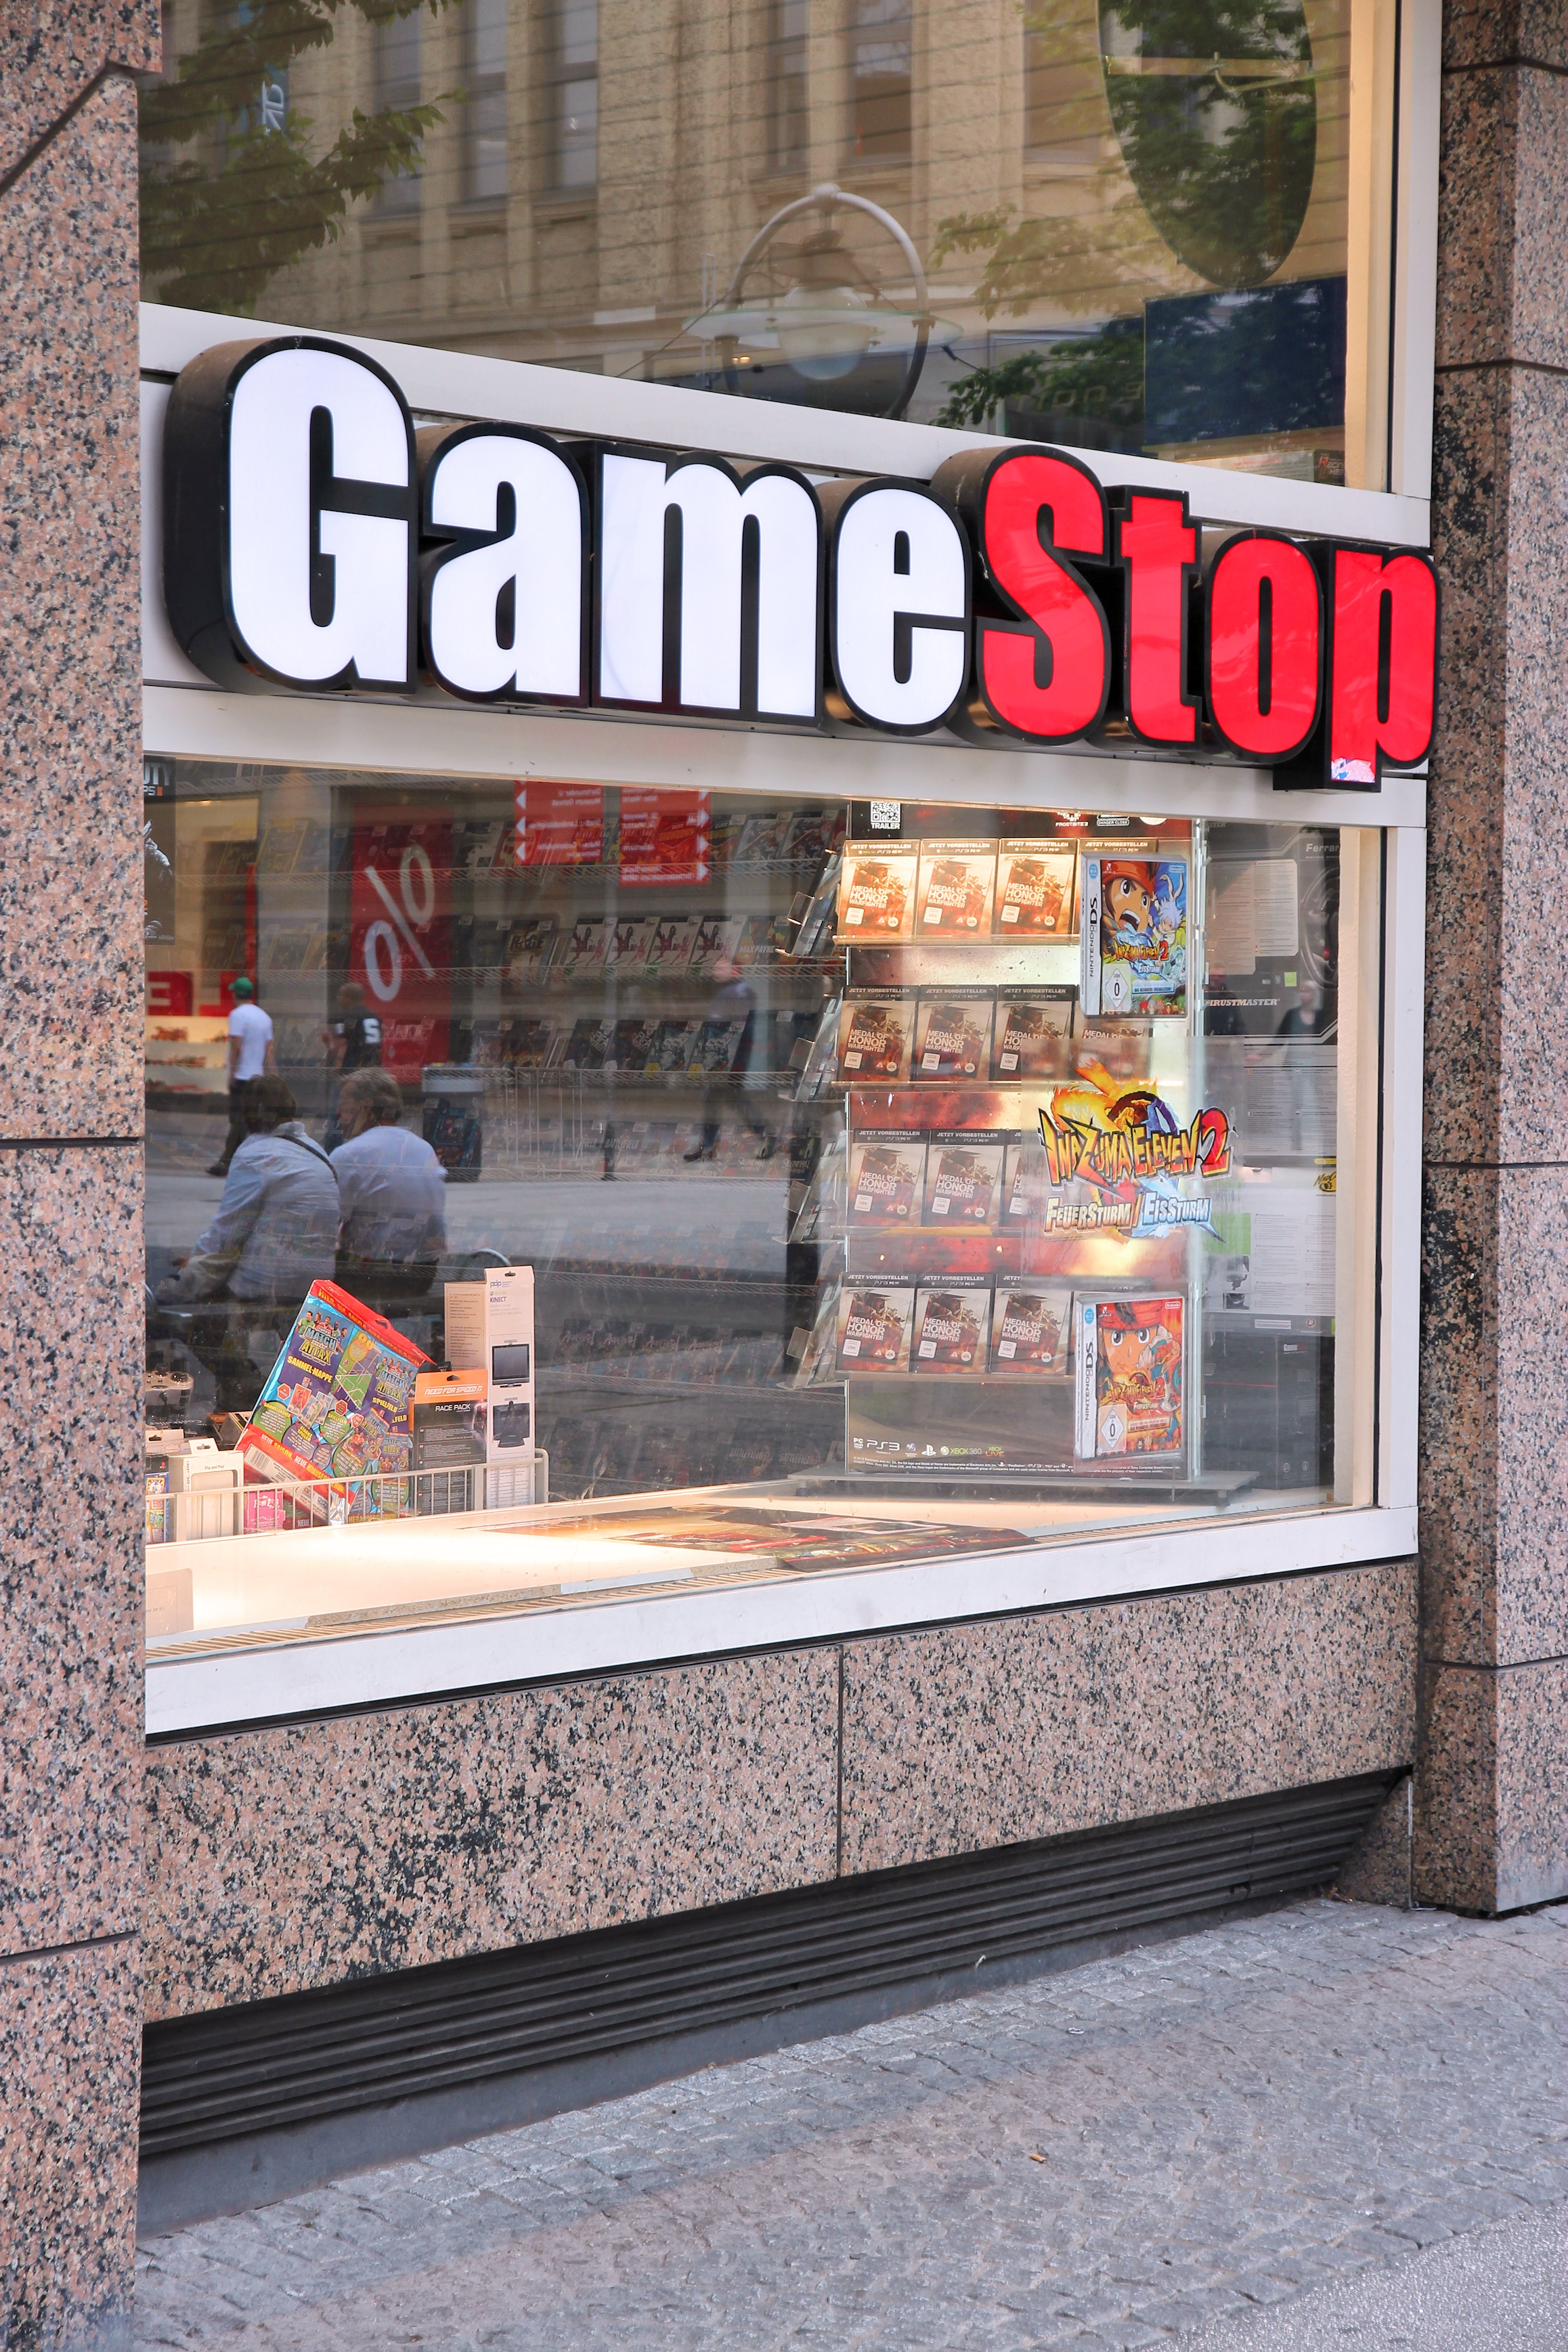 Dortmund, Germany - July 15, 2012: Gamestop store in Dortmund, Germany. Gamestop Corporation exists since 1984 and has 6,700 stores in many countries.